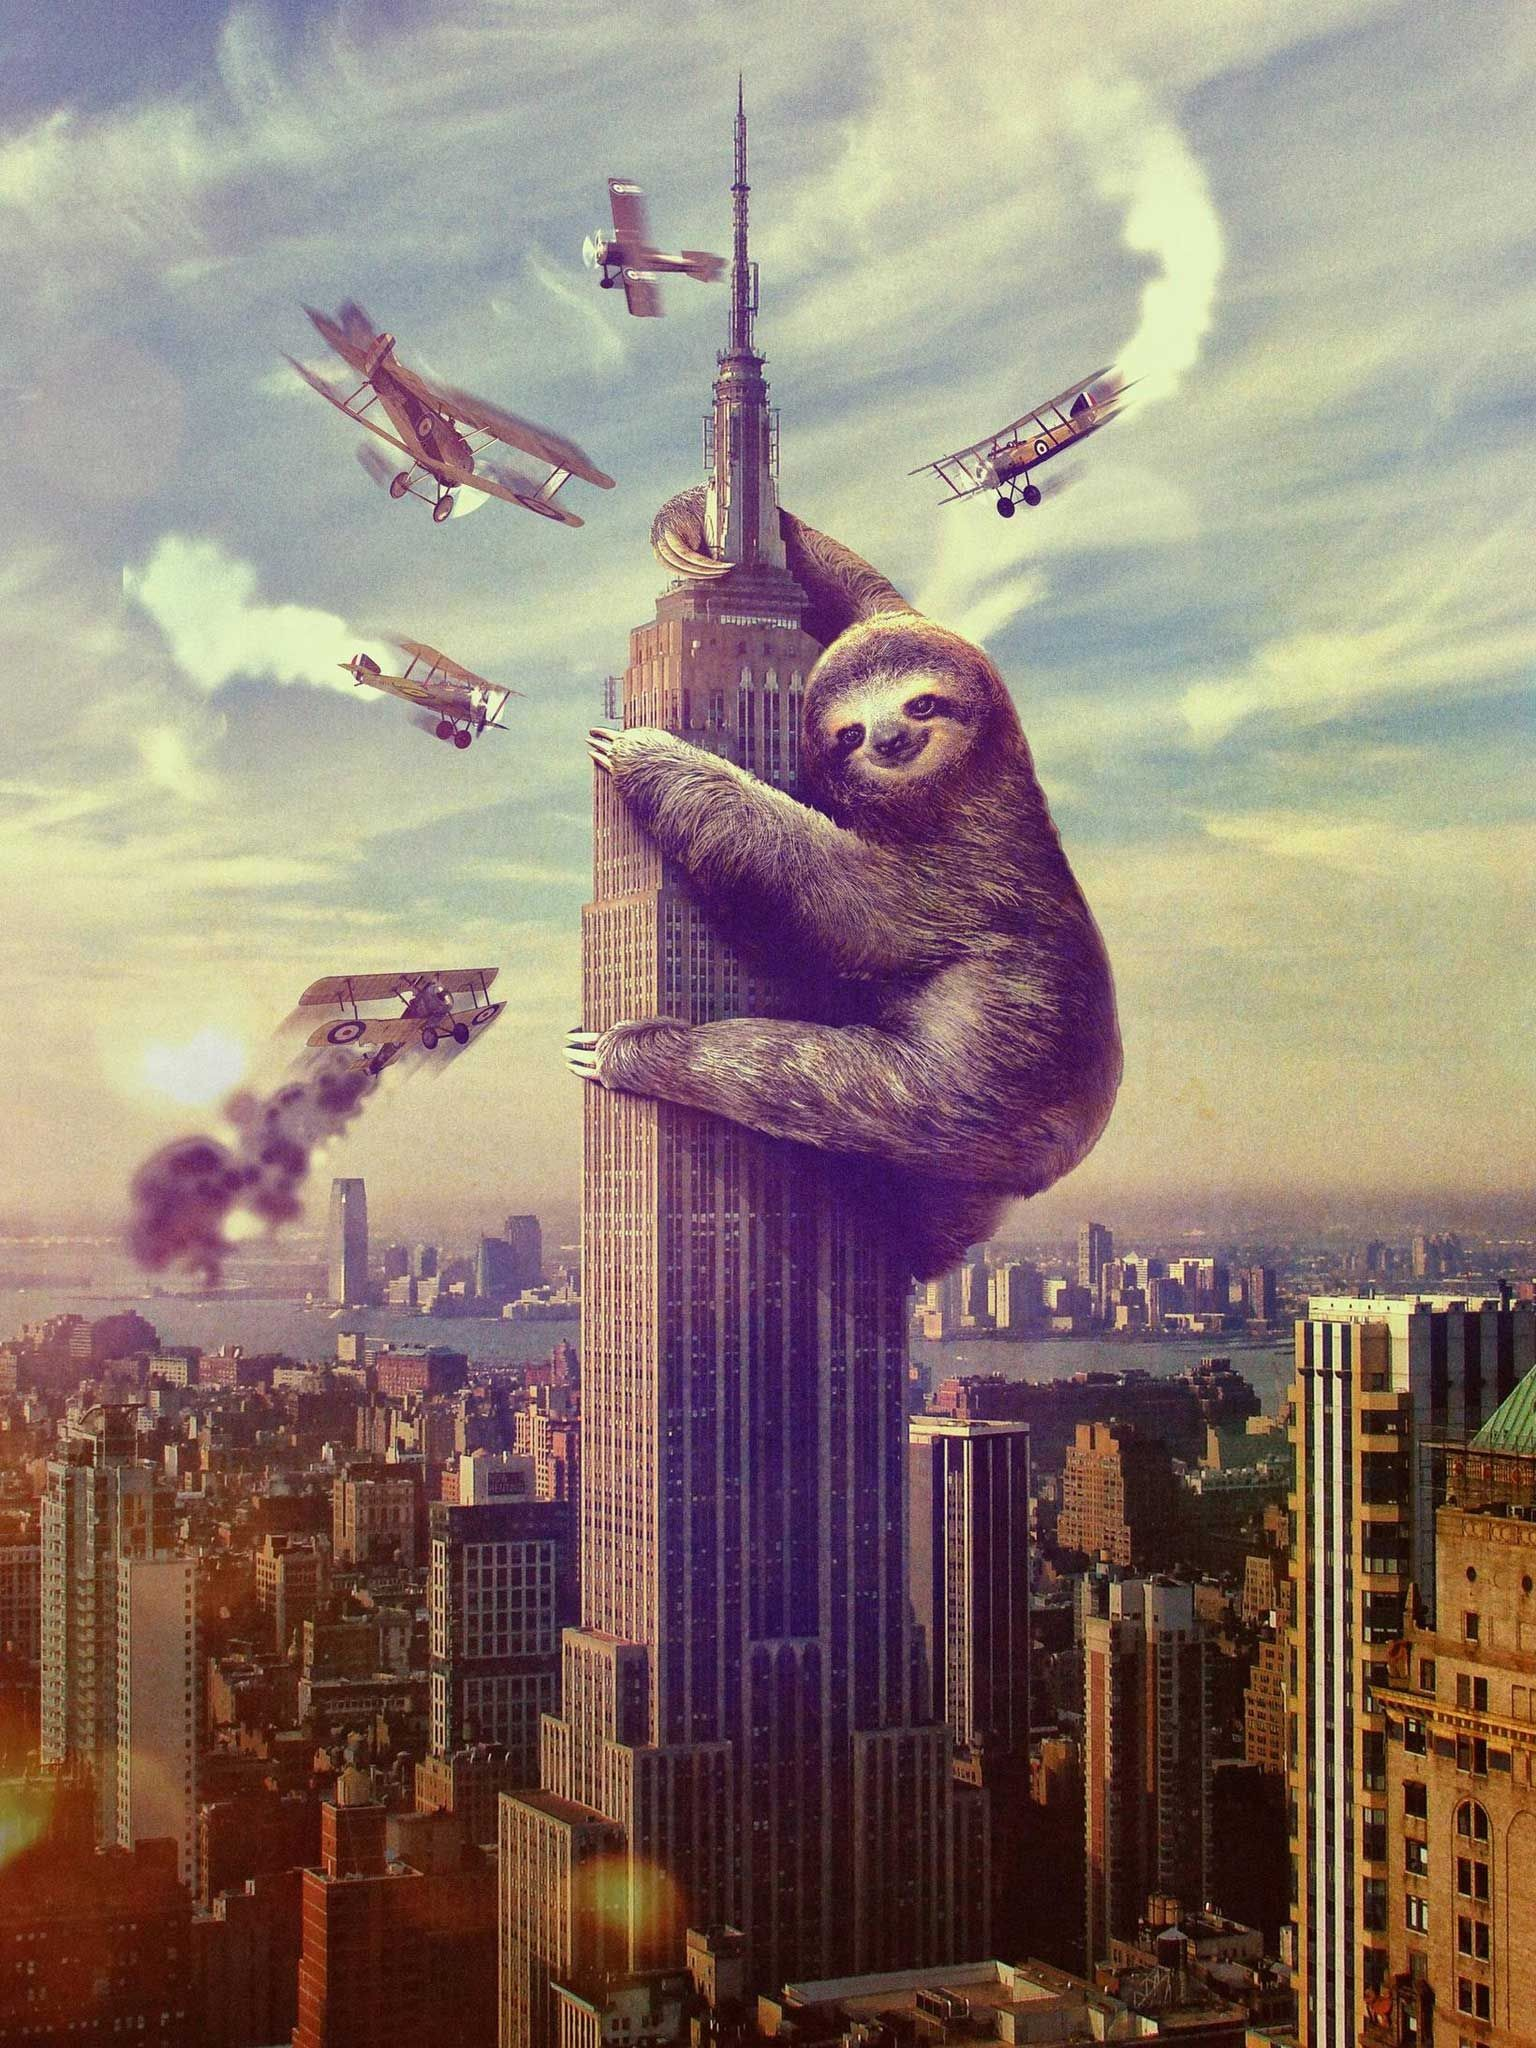 1536x2048 Sloth King Kong Poster Wallpaper  - Wallpaper 38342